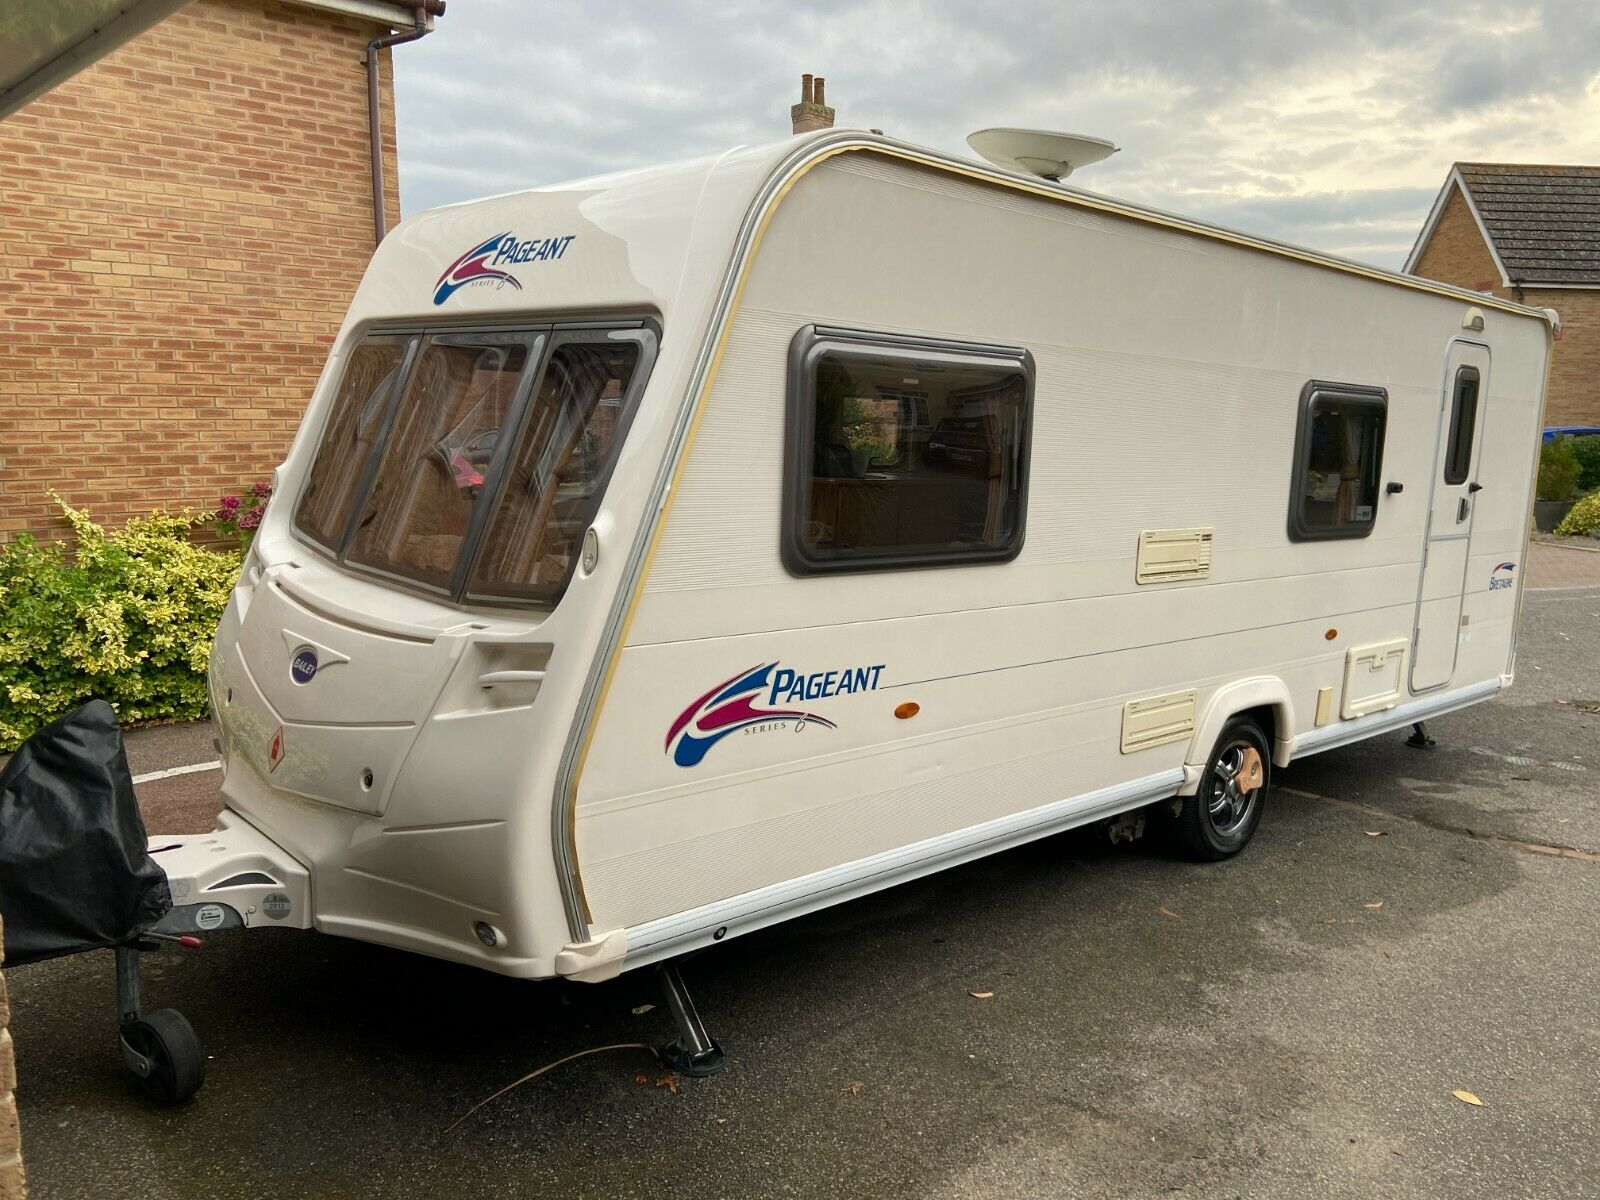 Bailey Pageant Bretagne 2008 6 Berth Caravan + mover. Full set up ready to go